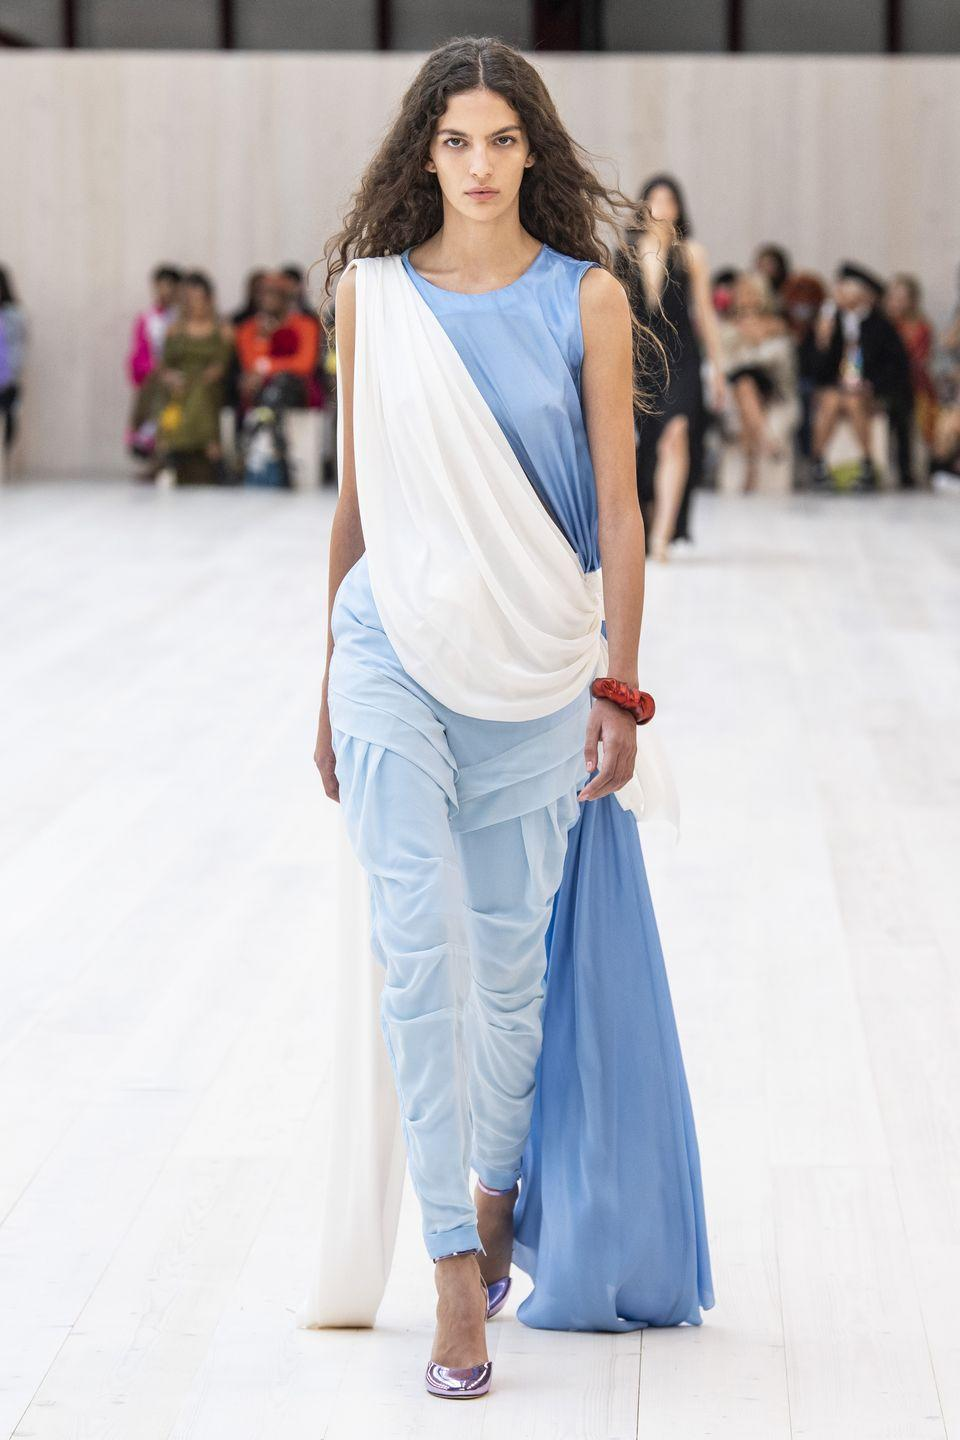 """<p>Jonathan Anderson staged Loewe's spring/summer 2022 show at the equestrian arena of La Garde Républicaine, a historic location in the centre of Paris, where models emerged through the floor, from a hidden underground space. The collection – which was the first that had been presented through a catwalk show since the pandemic began – was described by the house as """"a renaissance"""".</p><p>""""The runway returns with an unabashed outburst of experimentation—where provocation, sensuality and movement mark a definitive point of departure.""""</p>"""